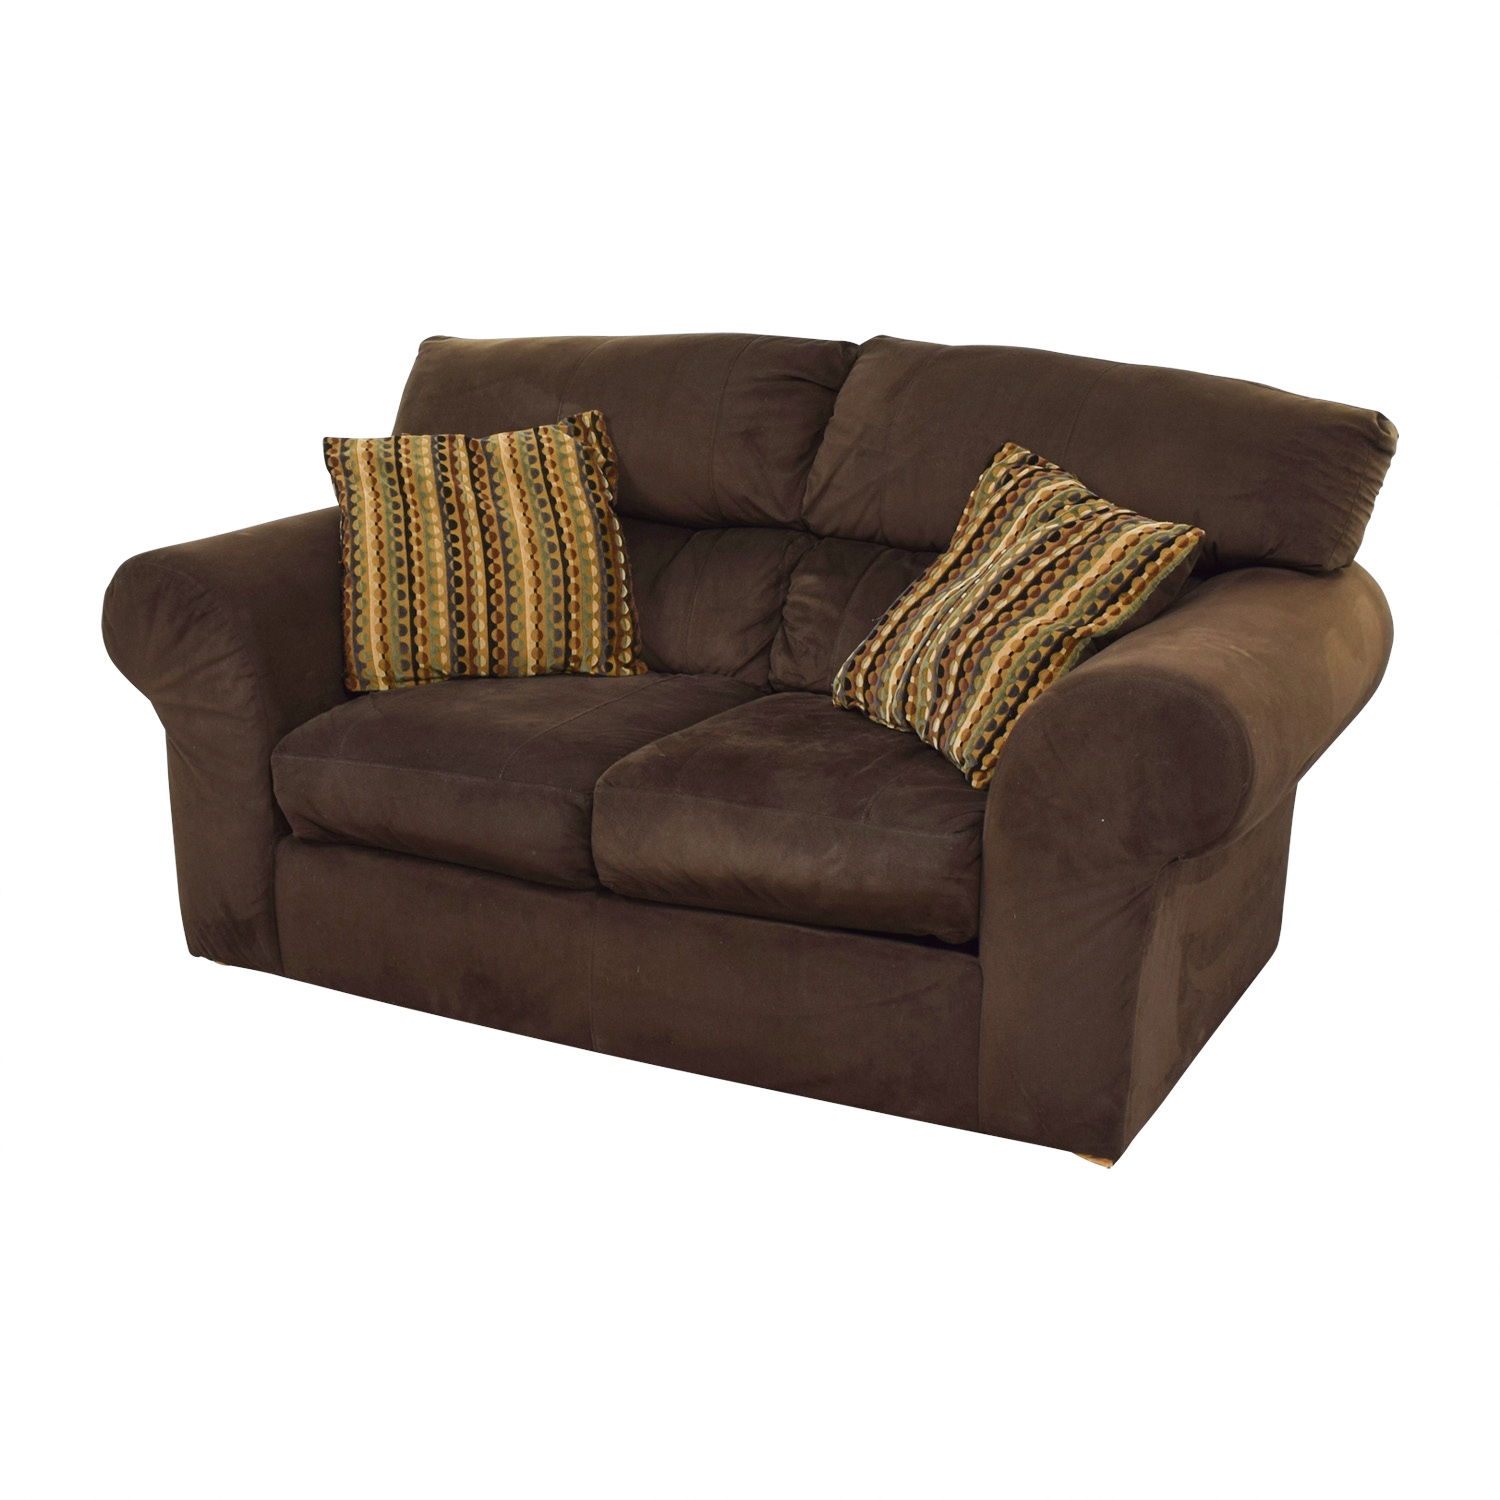 90 OFF  Bobs Furniture Bobs Furniture Brown Two